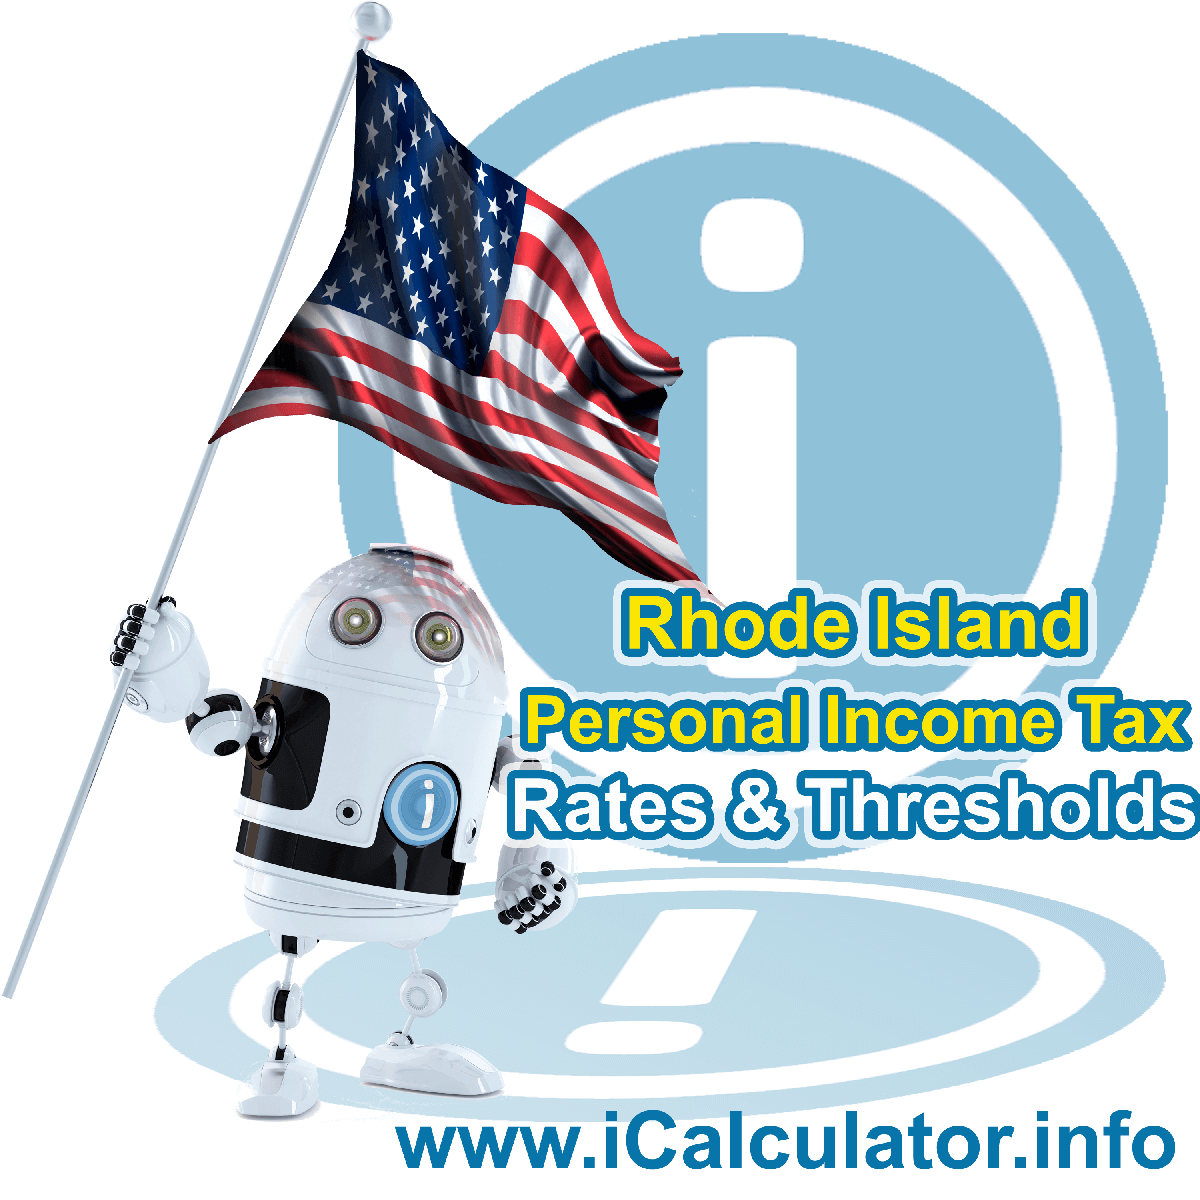 Rhode Island State Tax Tables 2017. This image displays details of the Rhode Island State Tax Tables for the 2017 tax return year which is provided in support of the 2017 US Tax Calculator